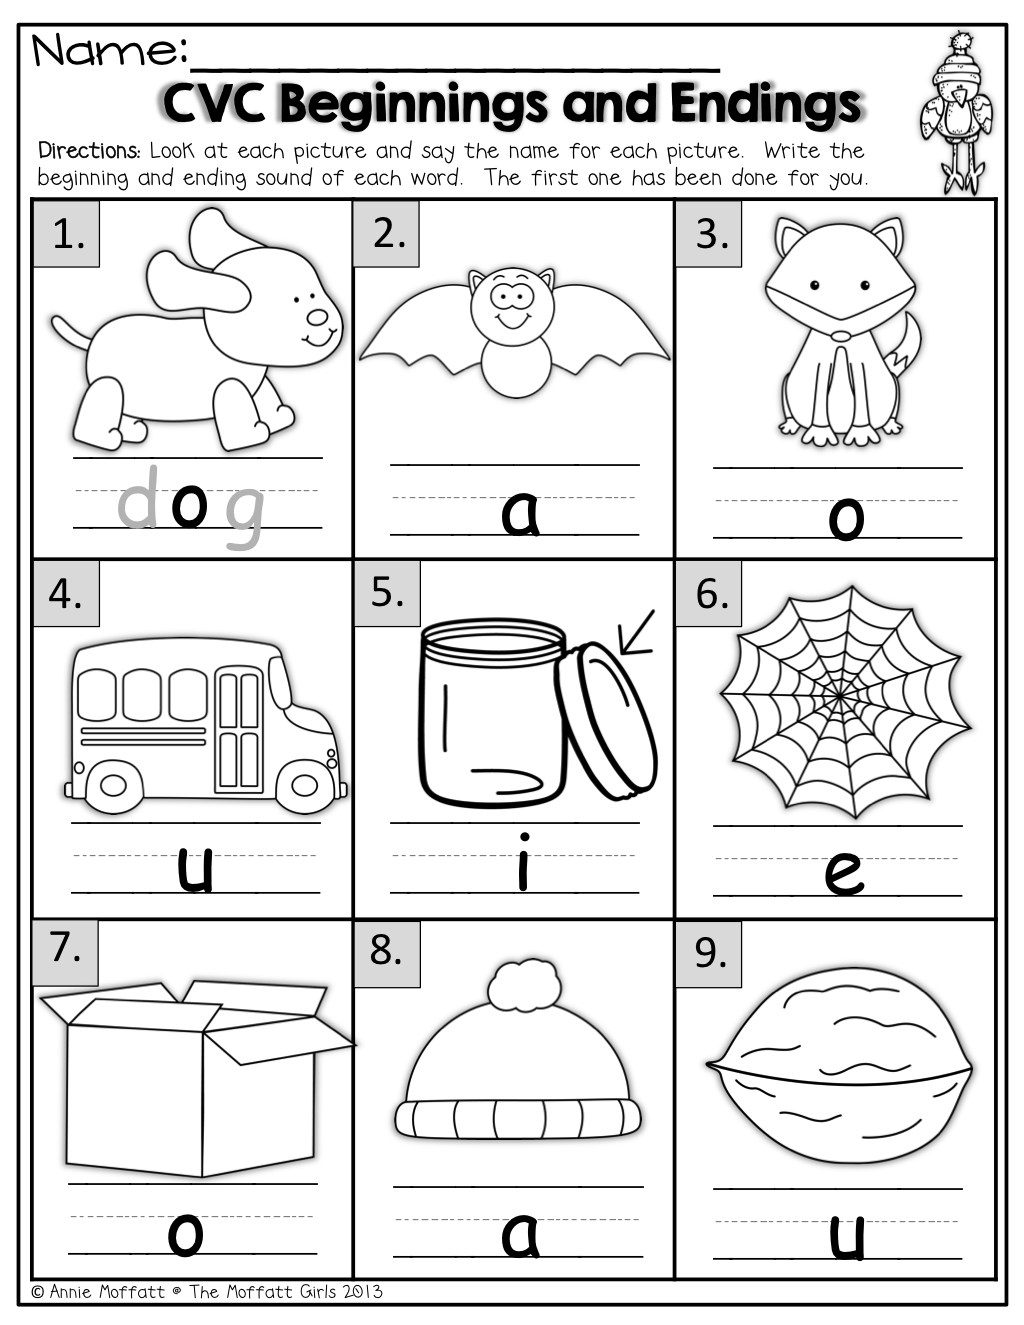 Pinbrandi Sparks On Smart Kids | Phonics Kindergarten pertaining to Letter T Worksheets School Sparks